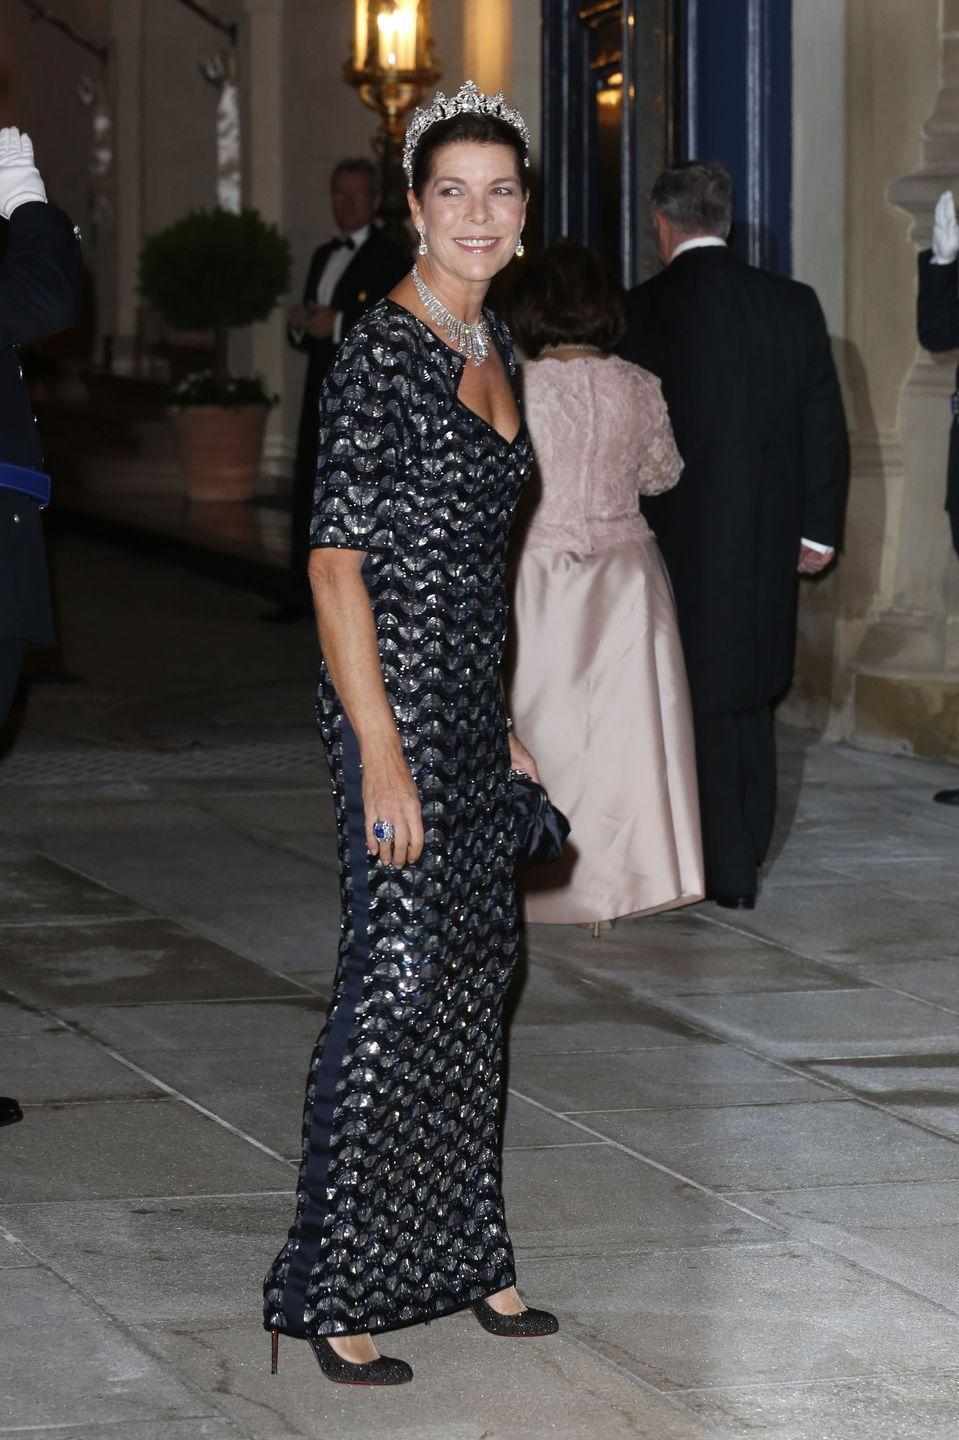 <p>Princess Caroline wore her grandmother's Cartier Pearl Drop Tiara and Diamond Fringe necklace in 2012 for the wedding celebrations of Luxembourg's Prince Guillaume and Stephanie de Lannoy.</p>